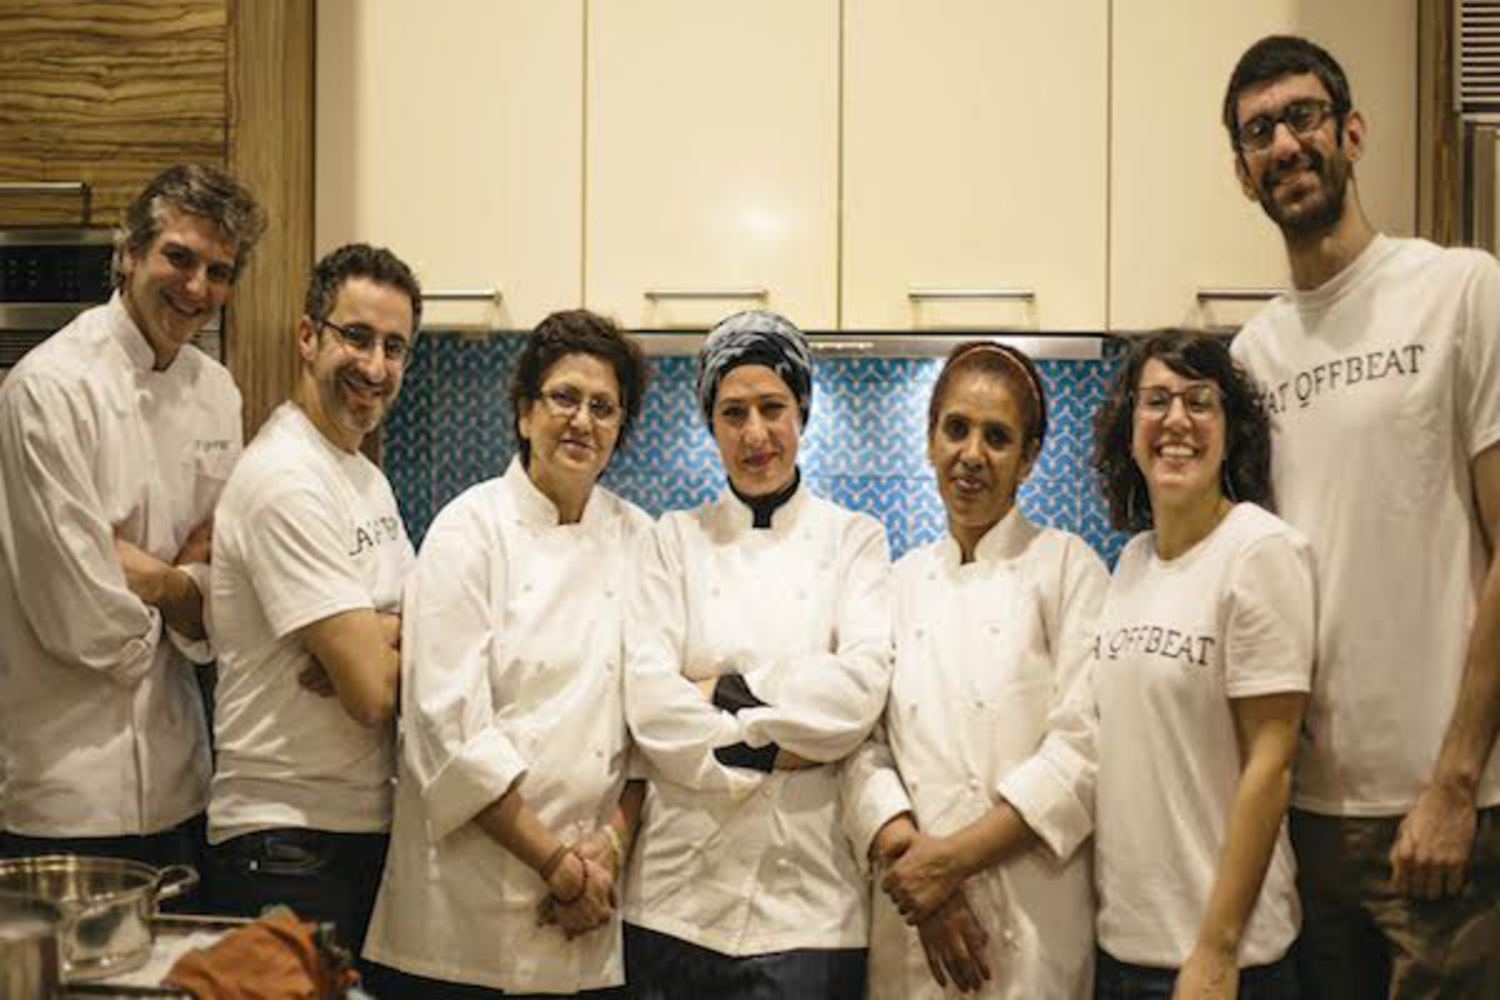 Left to right: Juan Suarez de Lezo, Chief Culinary Officer; Wissam Kahi, co-founder and COO; Rachana Rimal, chef; Nidaa al Janabi, chef; Mitslal Tedla, chef; Manal Kahi, founder and CEO; Christian Chemaly, tech advisor.